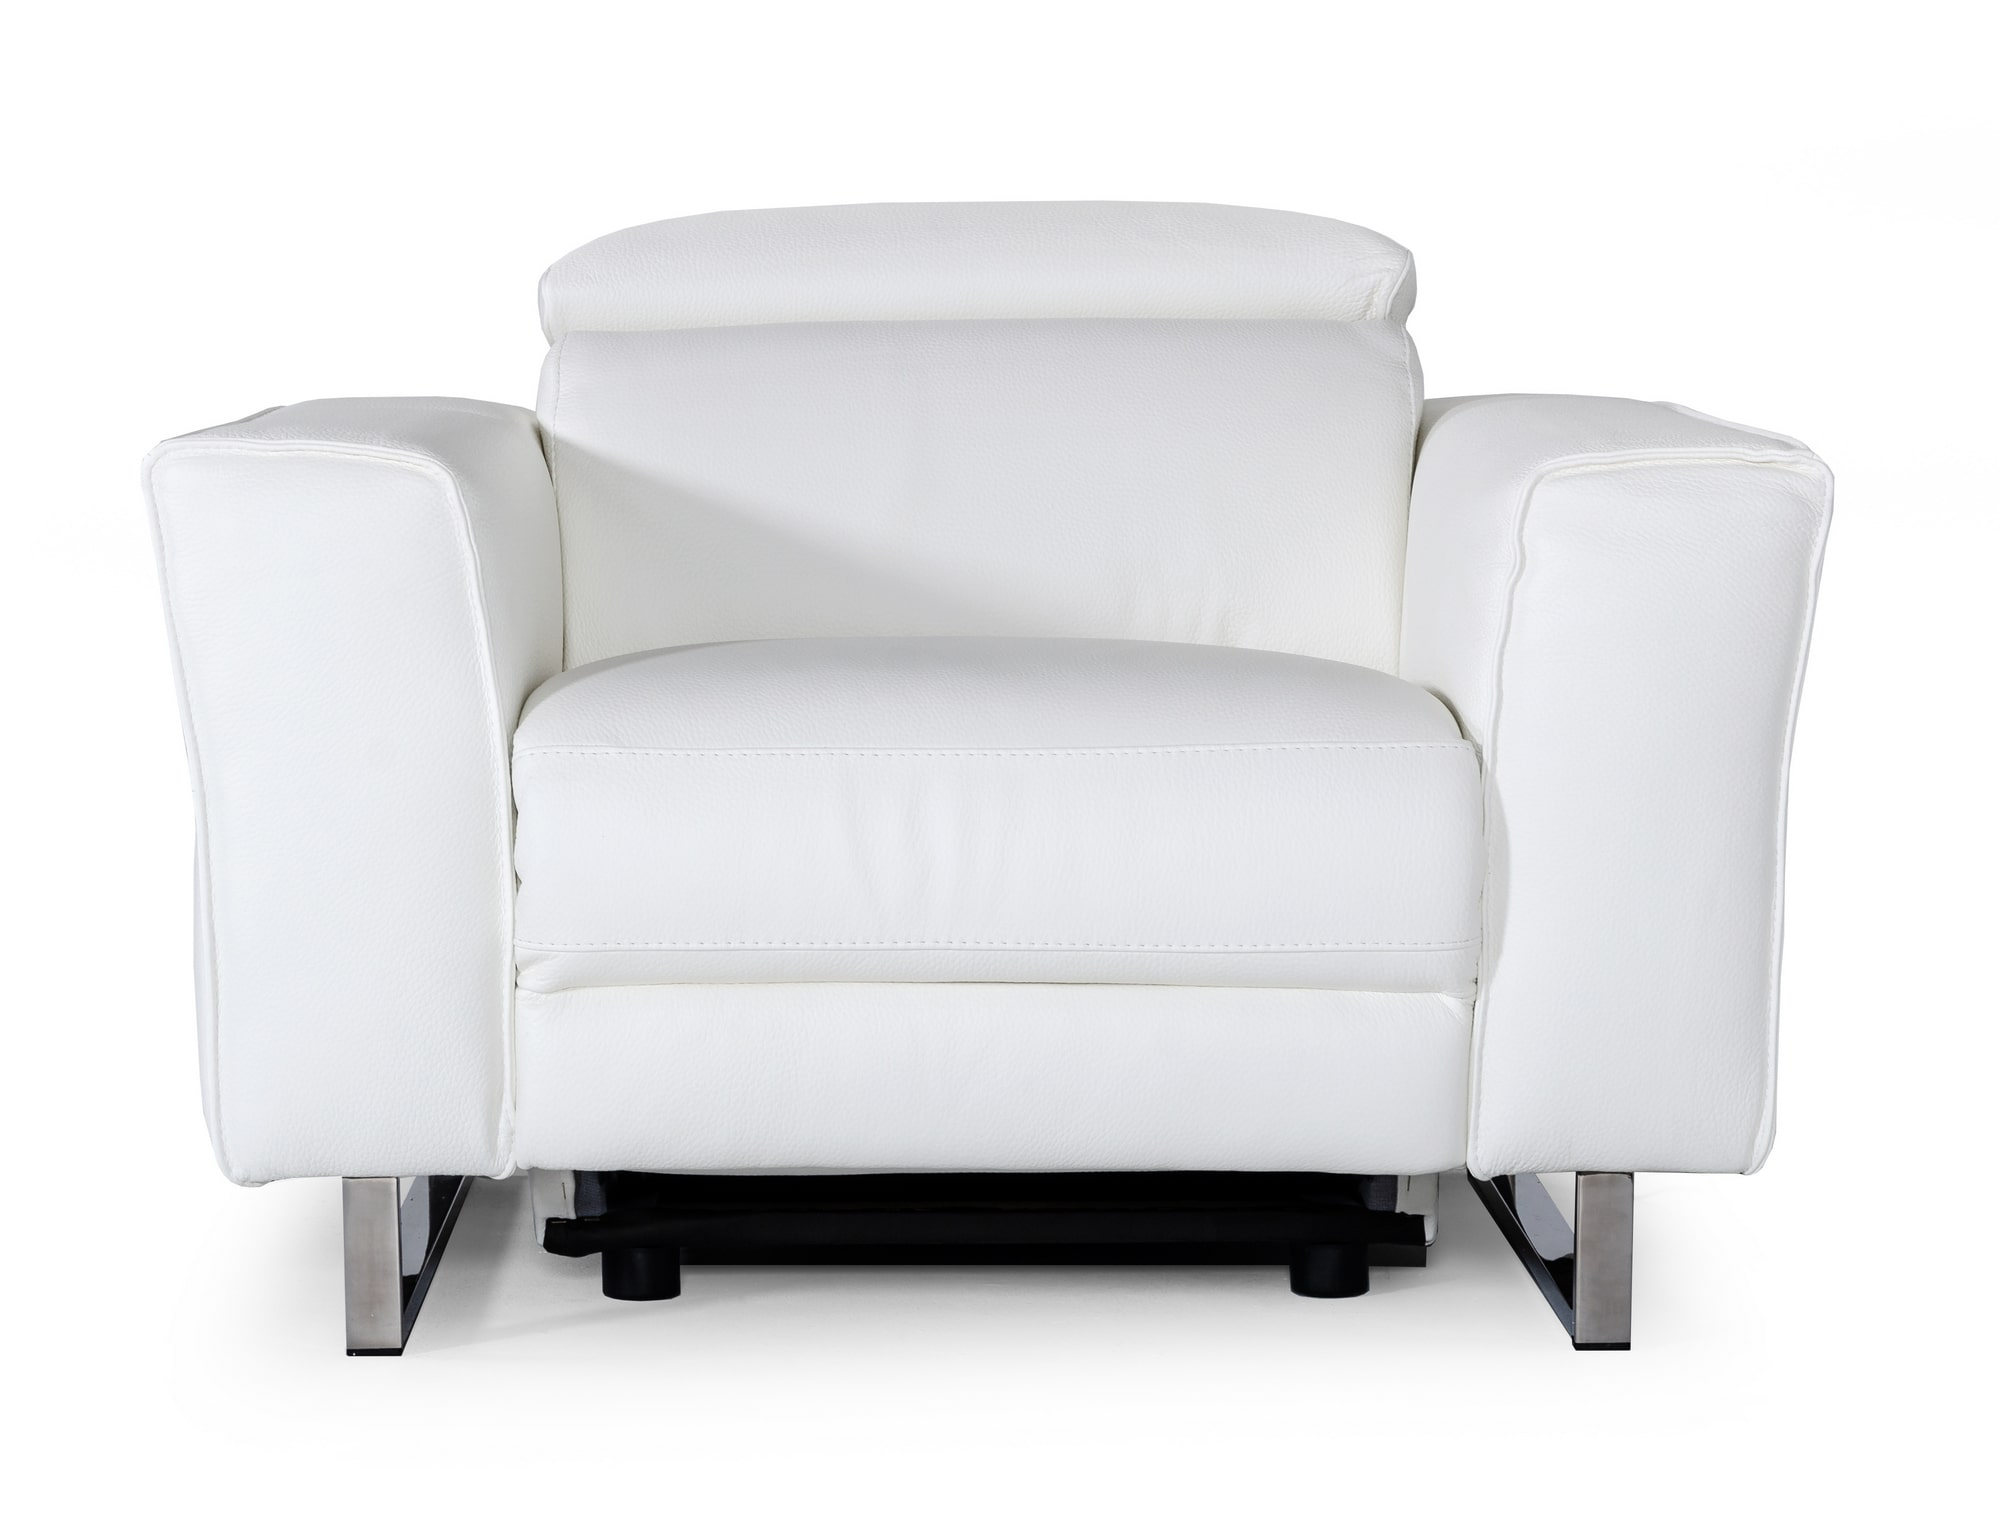 VIG Furniture Accenti Italia Lucca Italian Modern White Leather Armchair with Electric Recliner